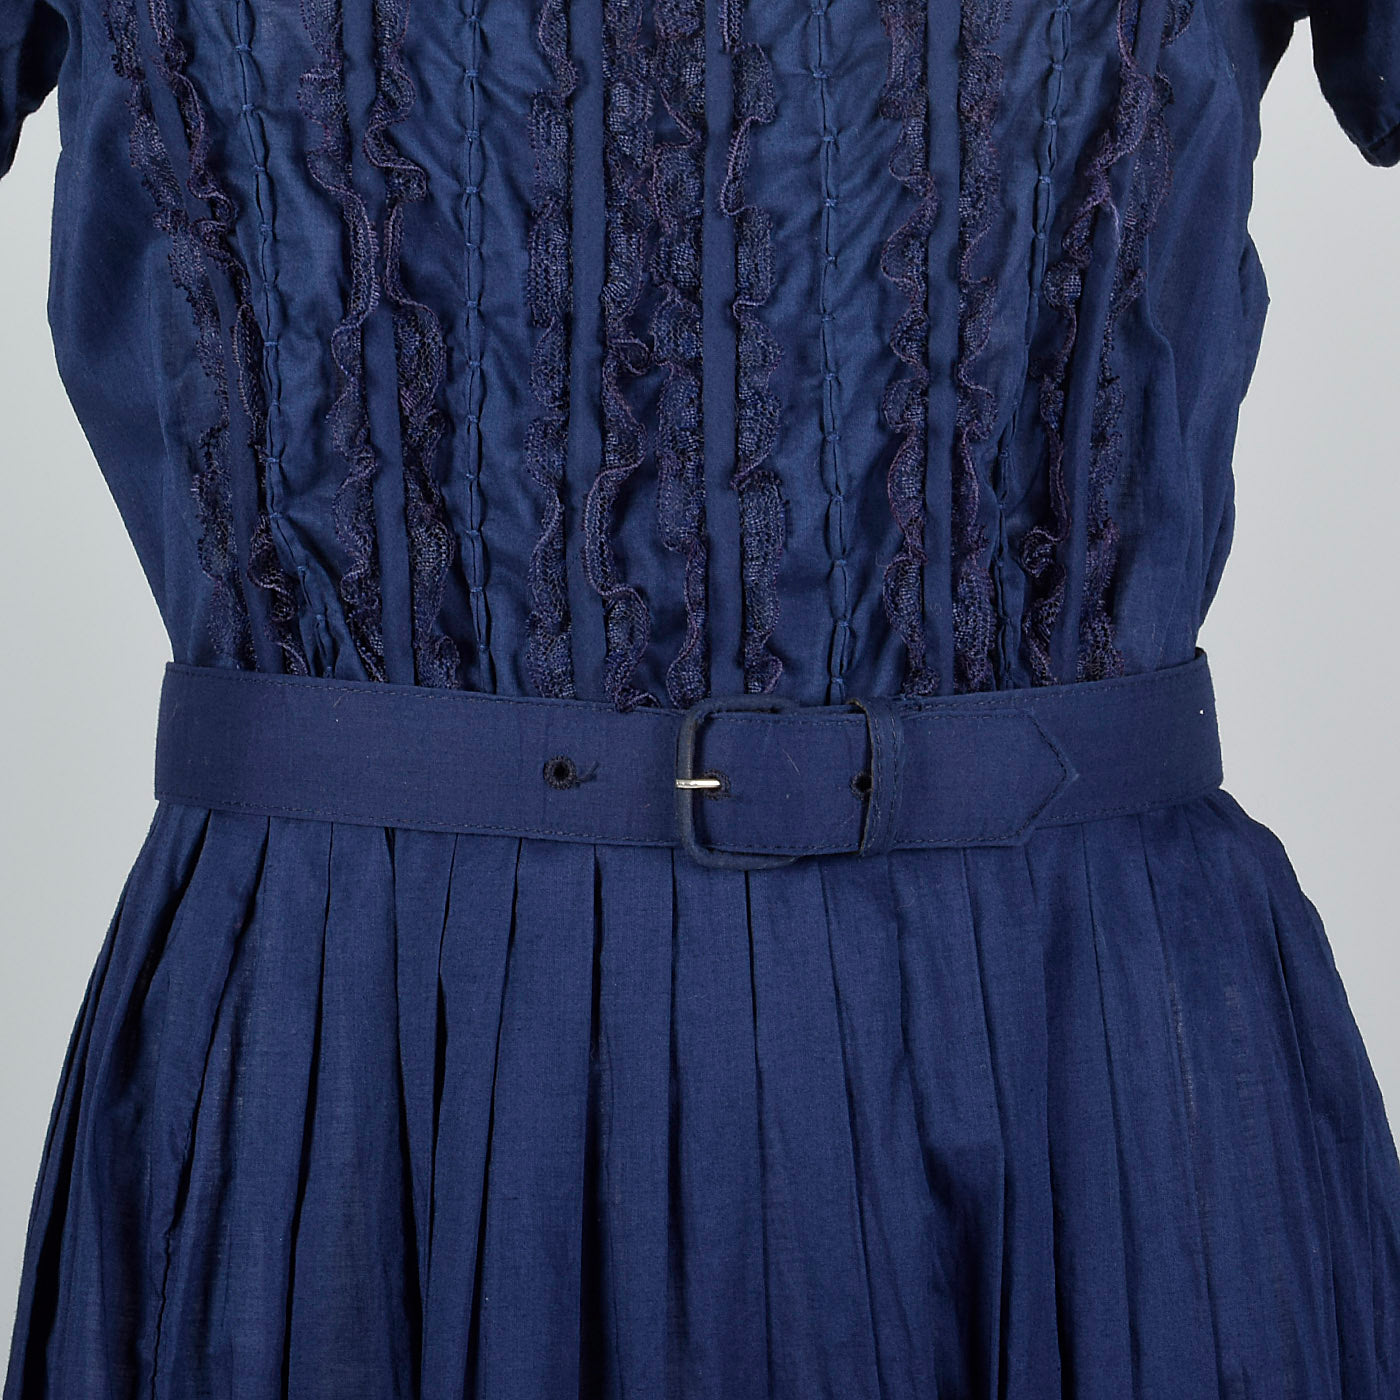 1950s Navy Cotton Day Dress with Ruffle Front